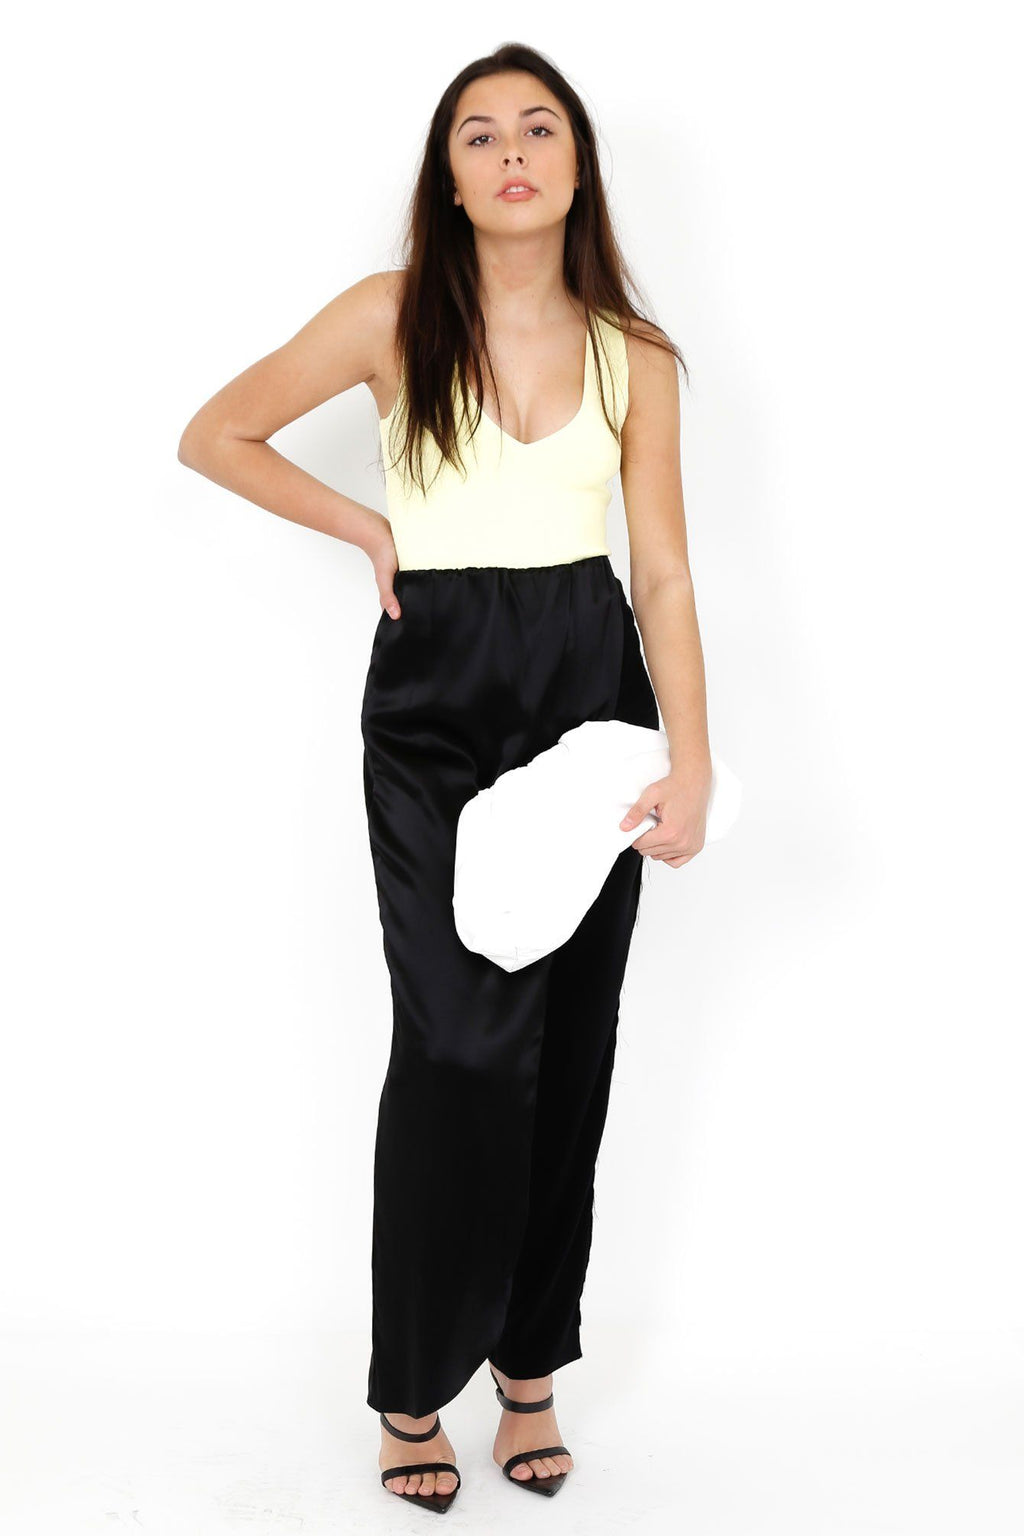 BAJA EAST | Skirt Pant - Satin Black